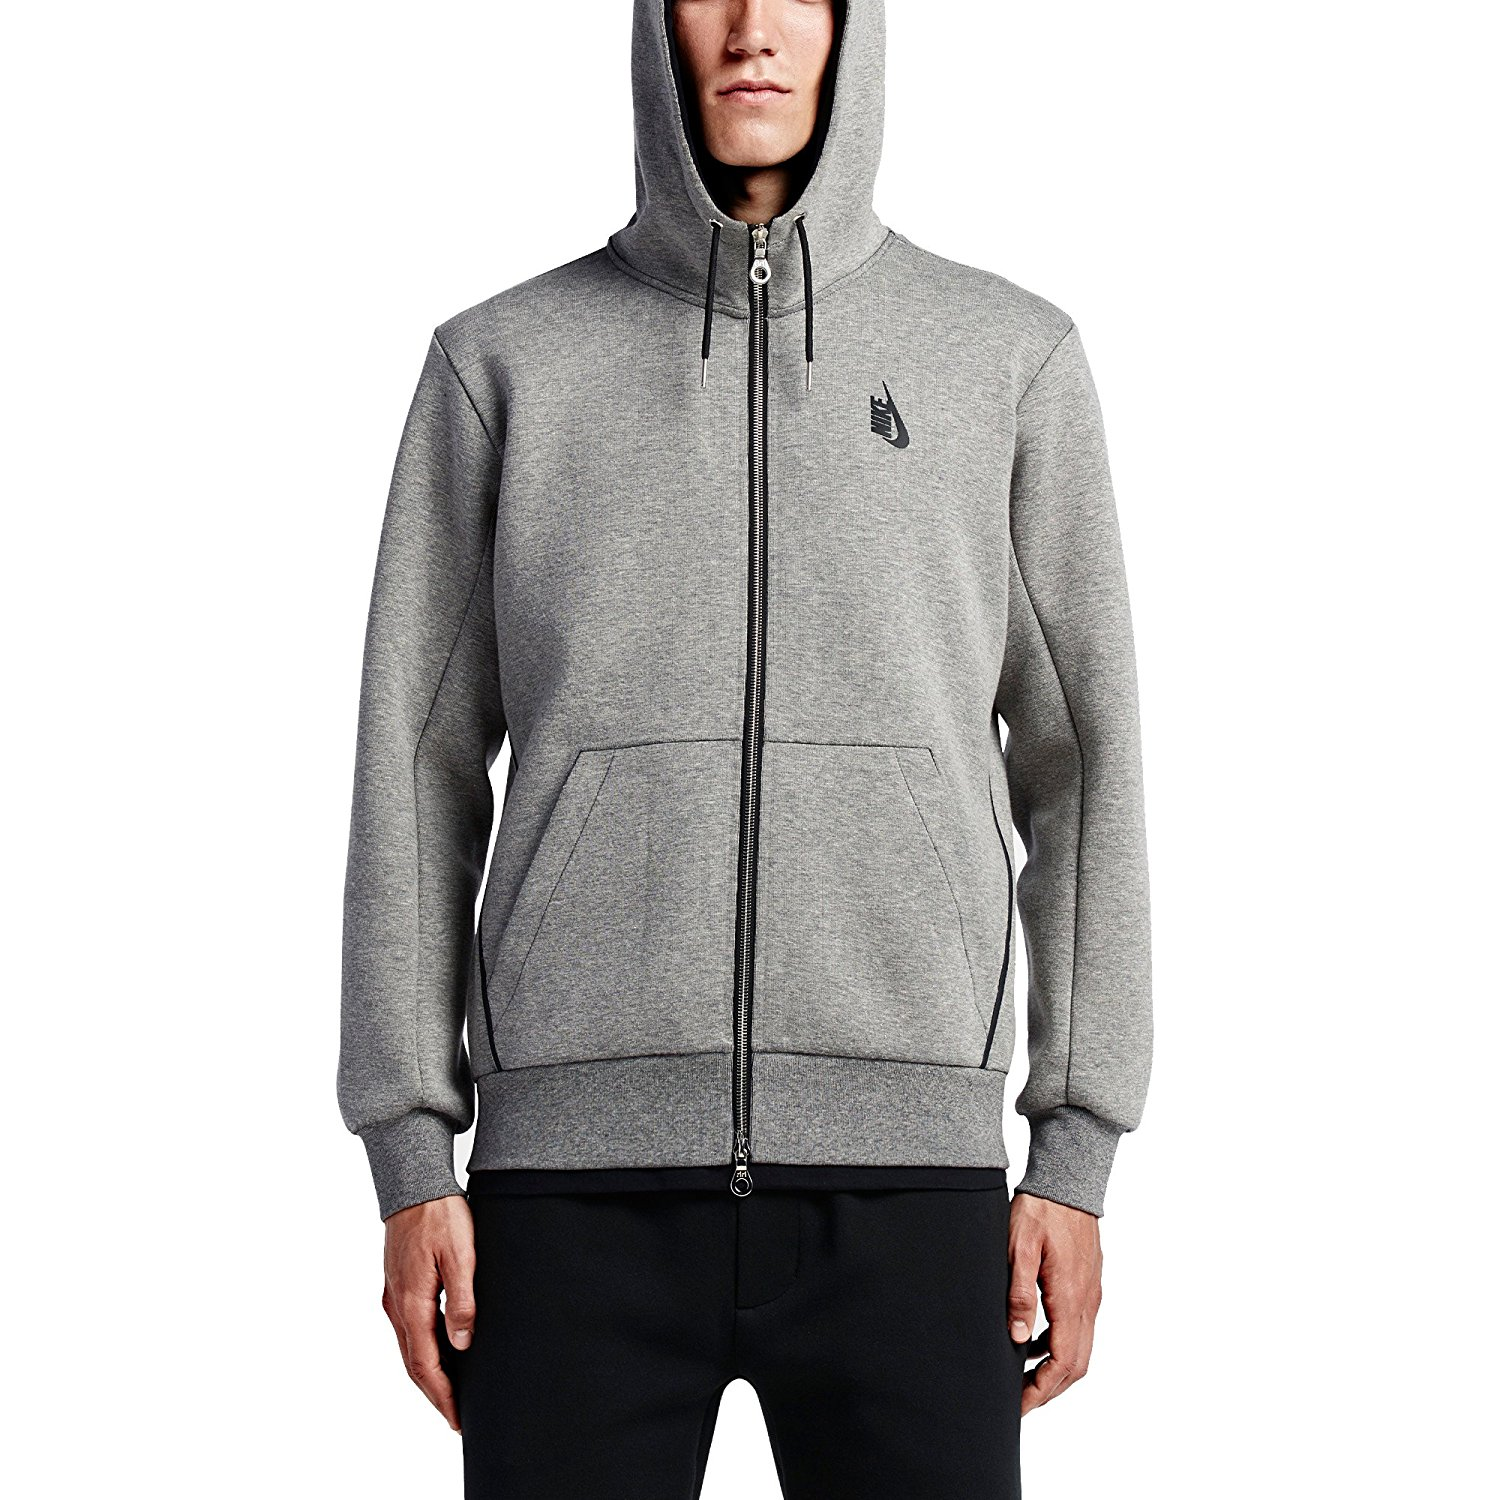 0e5e6ec84676 Get Quotations · Nike Lab Essentials Tech Fleece Men s Hoodie